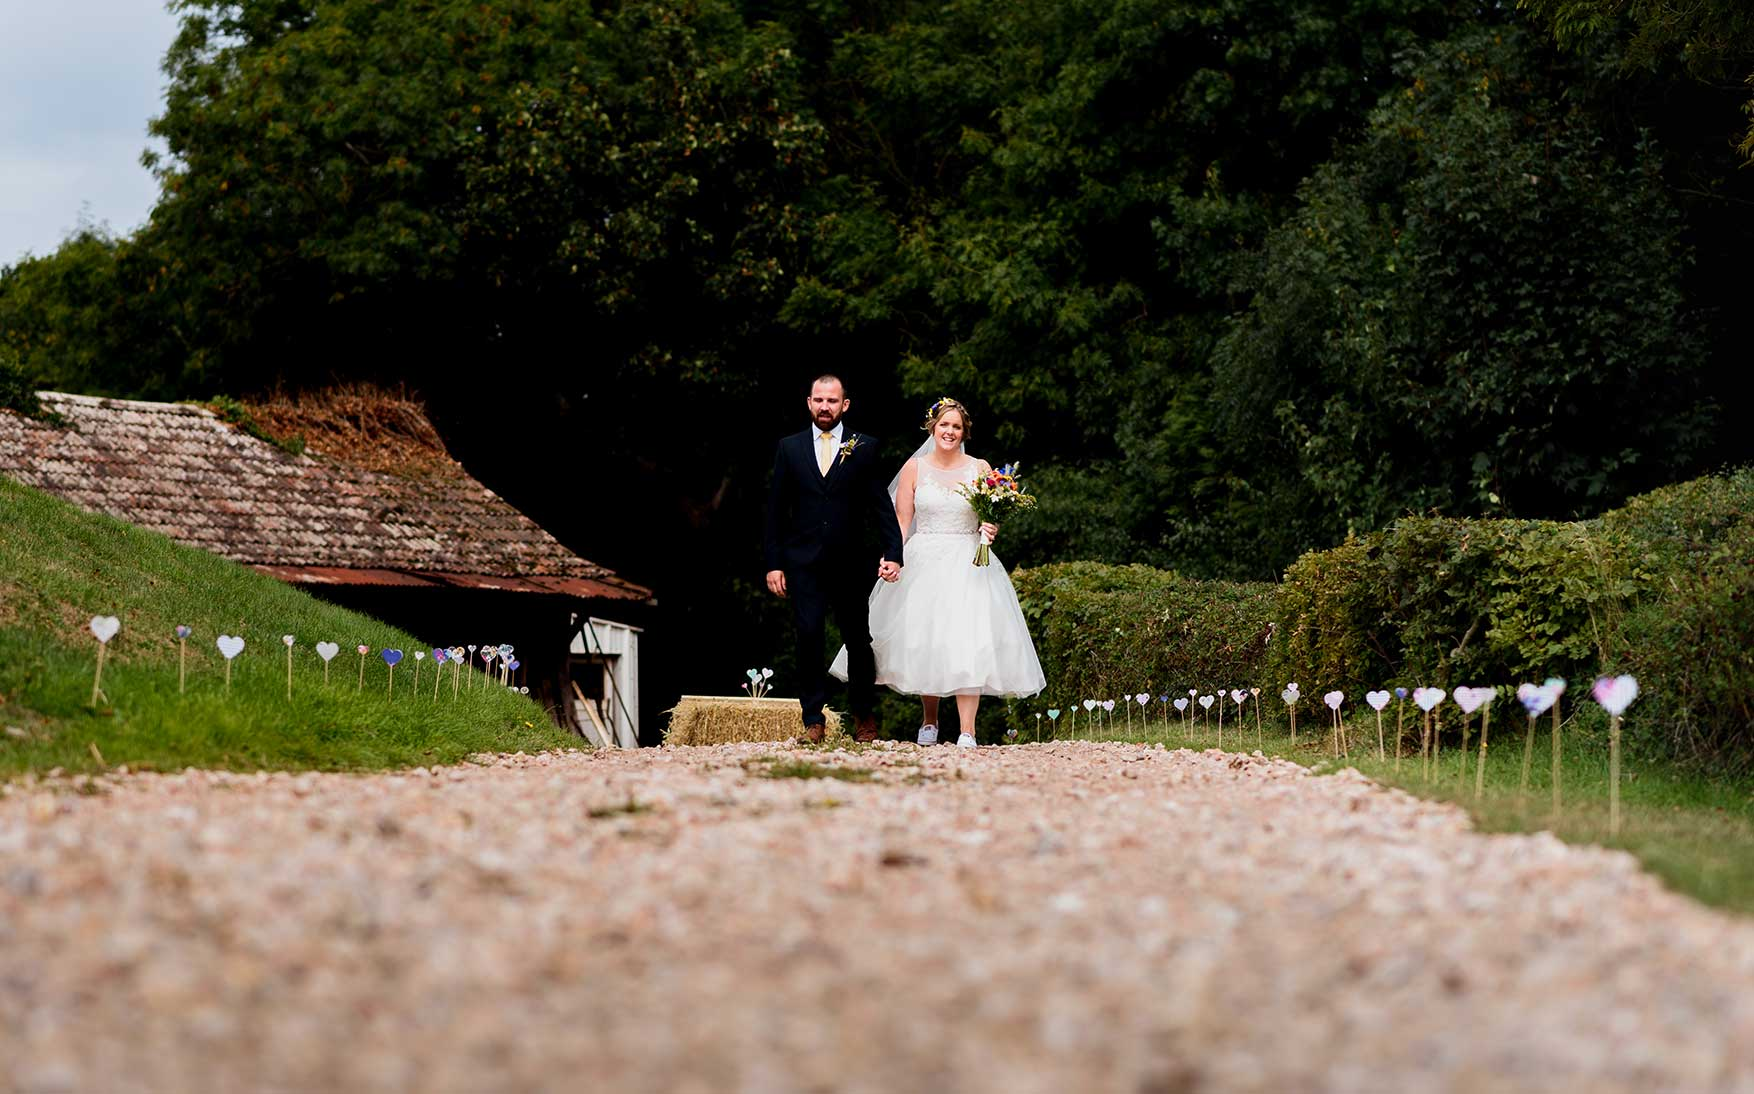 Bride and groom walking down path to the barn